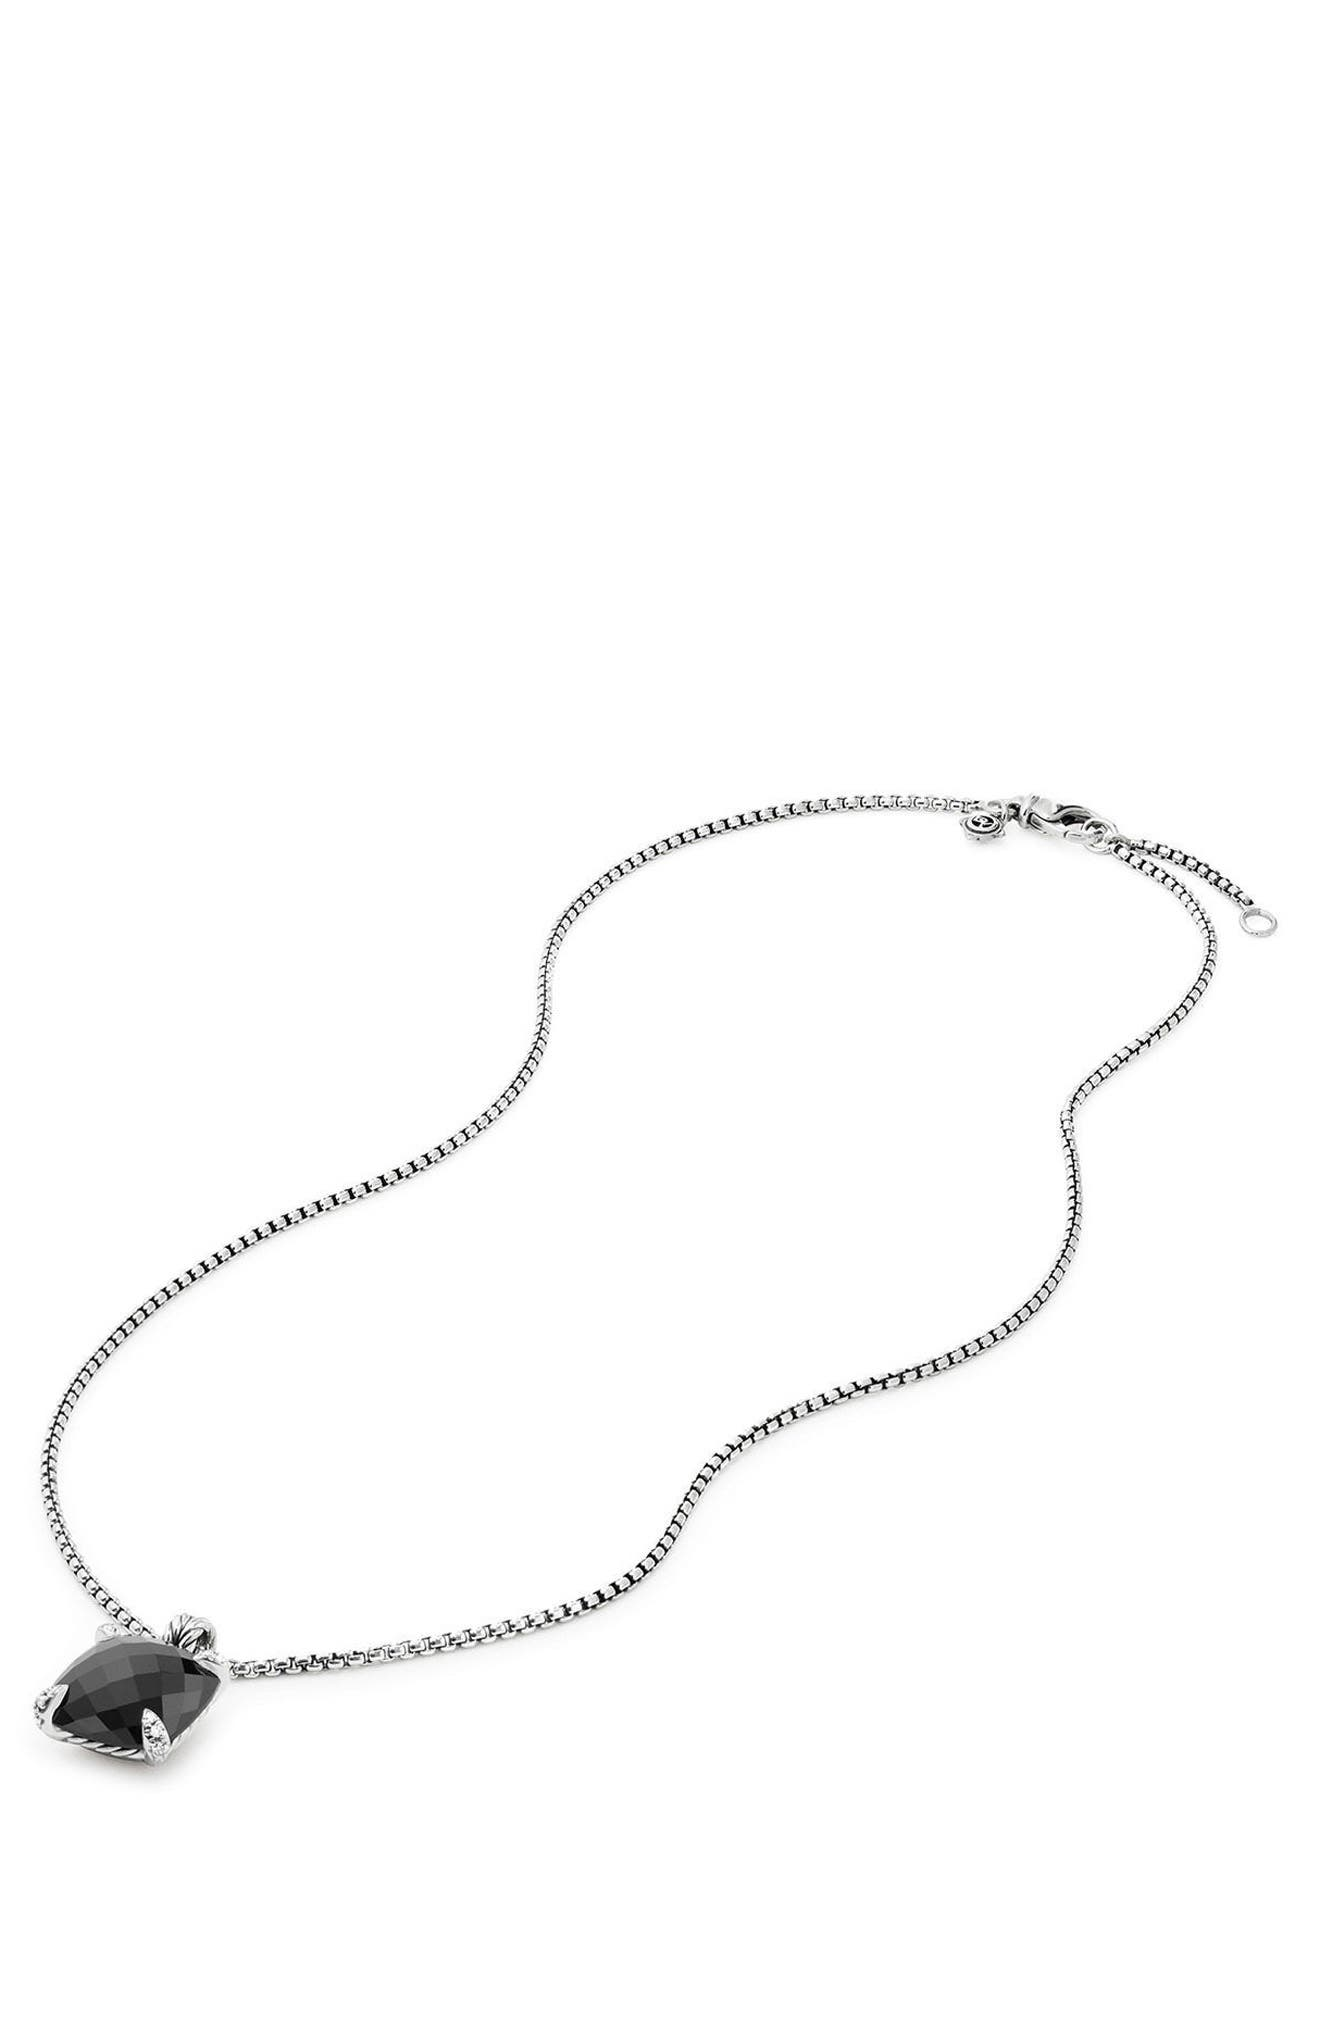 David Yurman Châtelaine Pendant Necklace with Diamonds